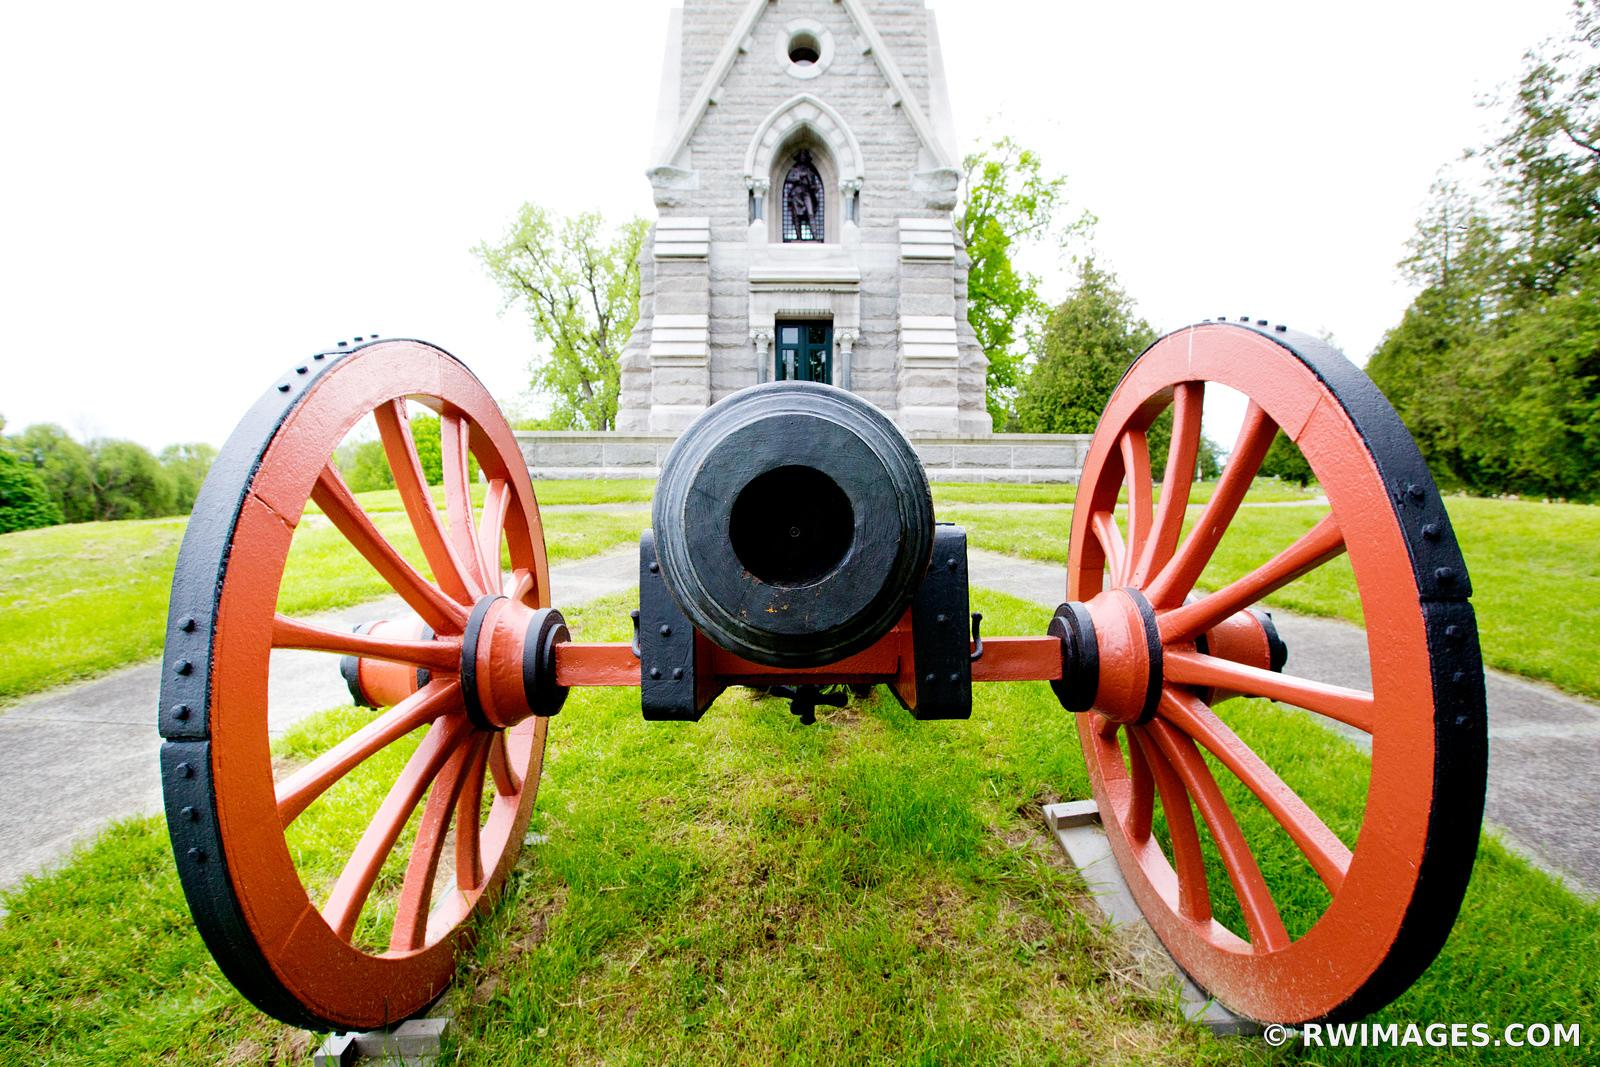 CANNON BATTLEFIELD SARATOGA MONUMENT SARATOGA NATIONAL HISTORICAL PARK NEW YORK COLOR